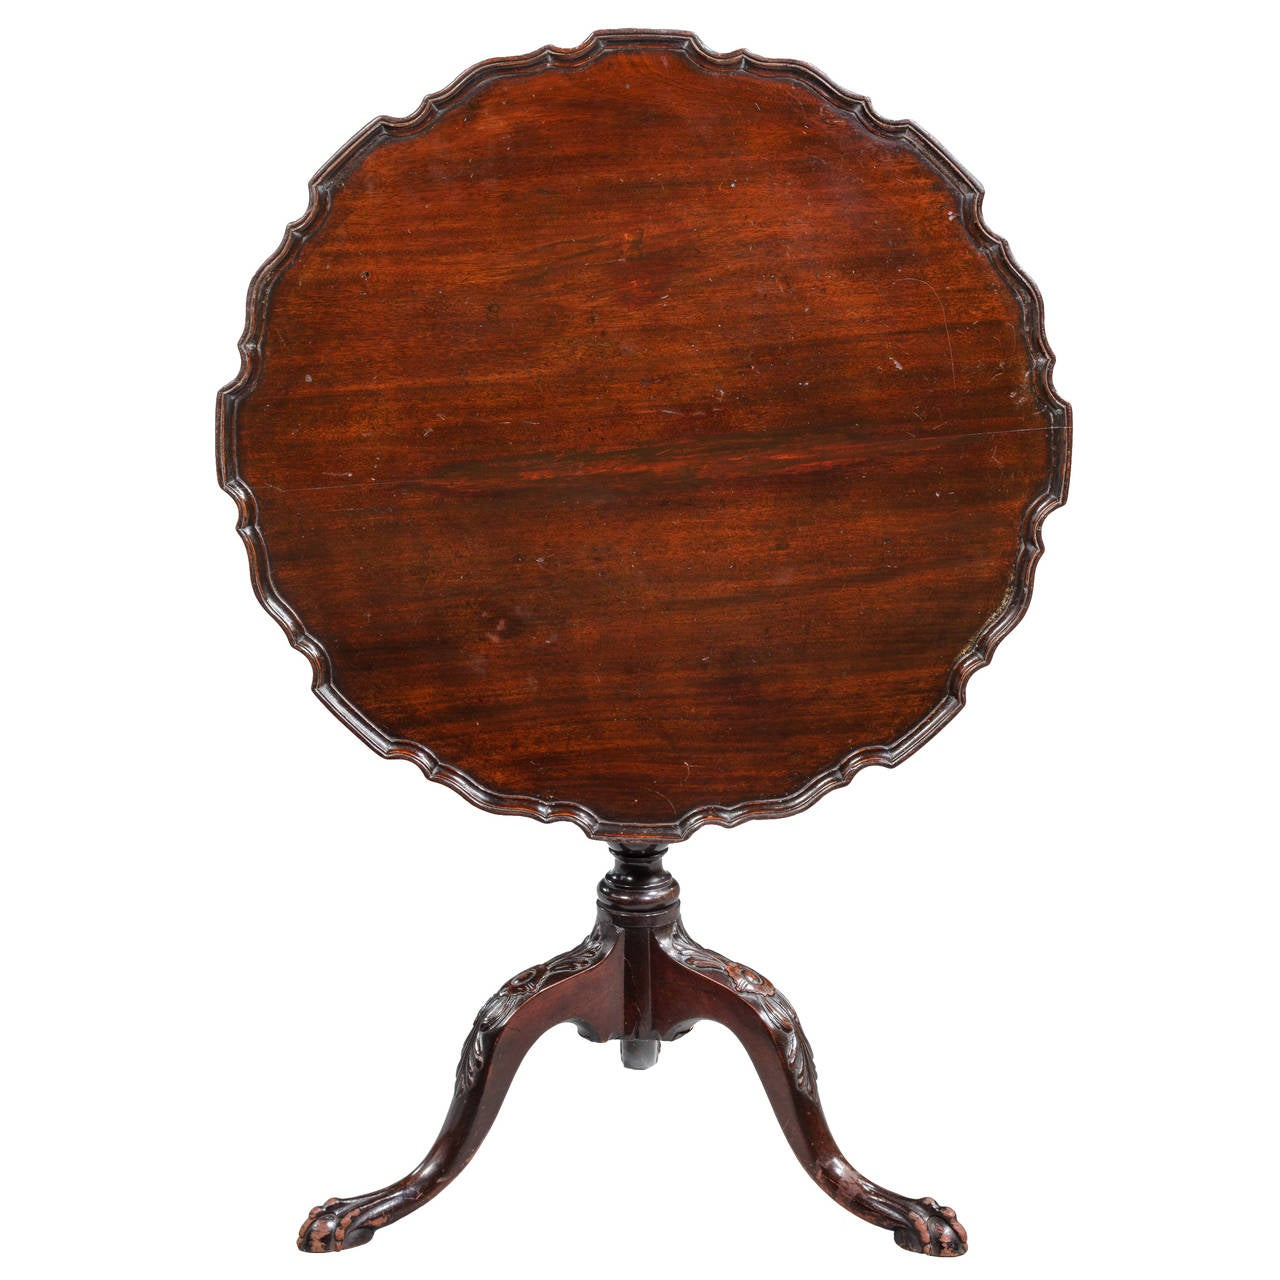 Chippendale Style Mahogany Dish-Top Tilt Table